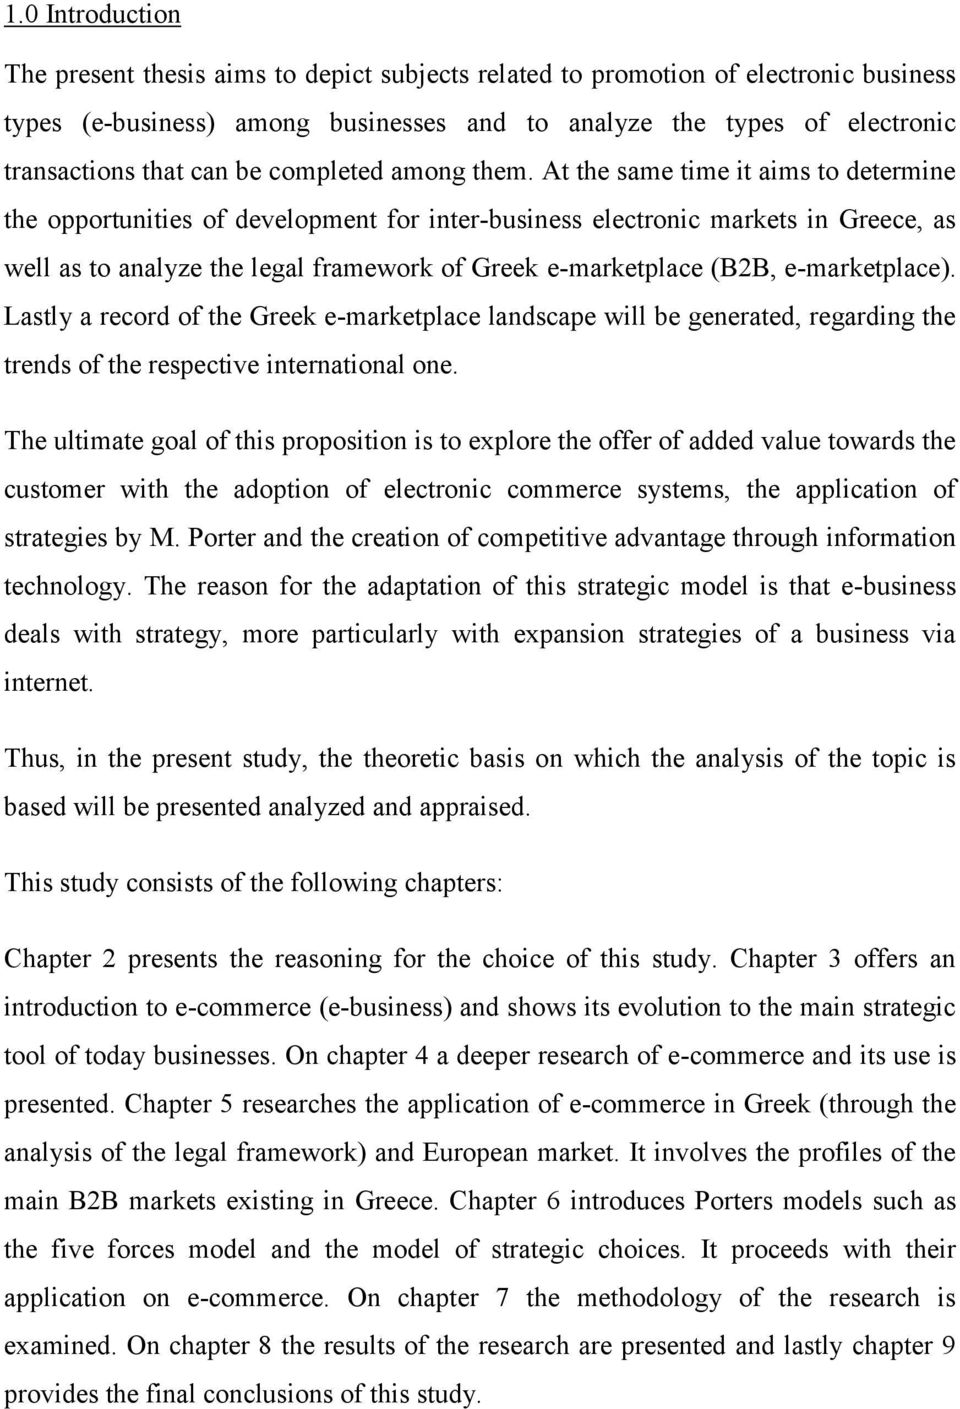 At the same time it aims to determine the opportunities of development for inter-business electronic markets in Greece, as well as to analyze the legal framework of Greek e-marketplace (B2B,